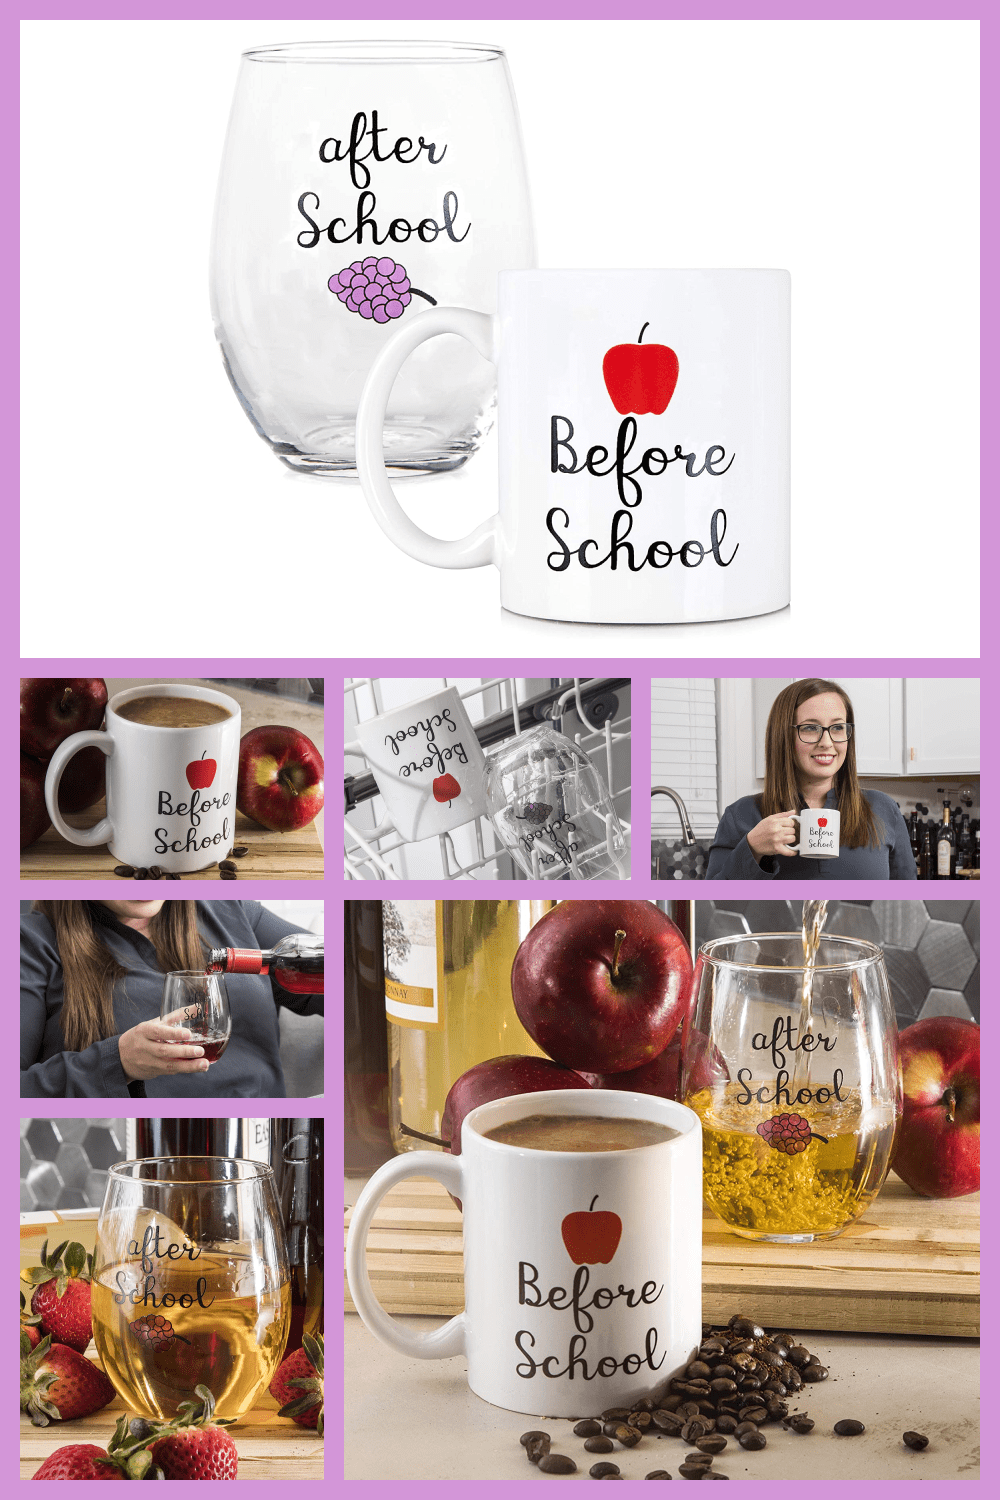 Two cups - one white in a classic style, the other semicircular and transparent. This can be a great gift for a homeroom teacher.